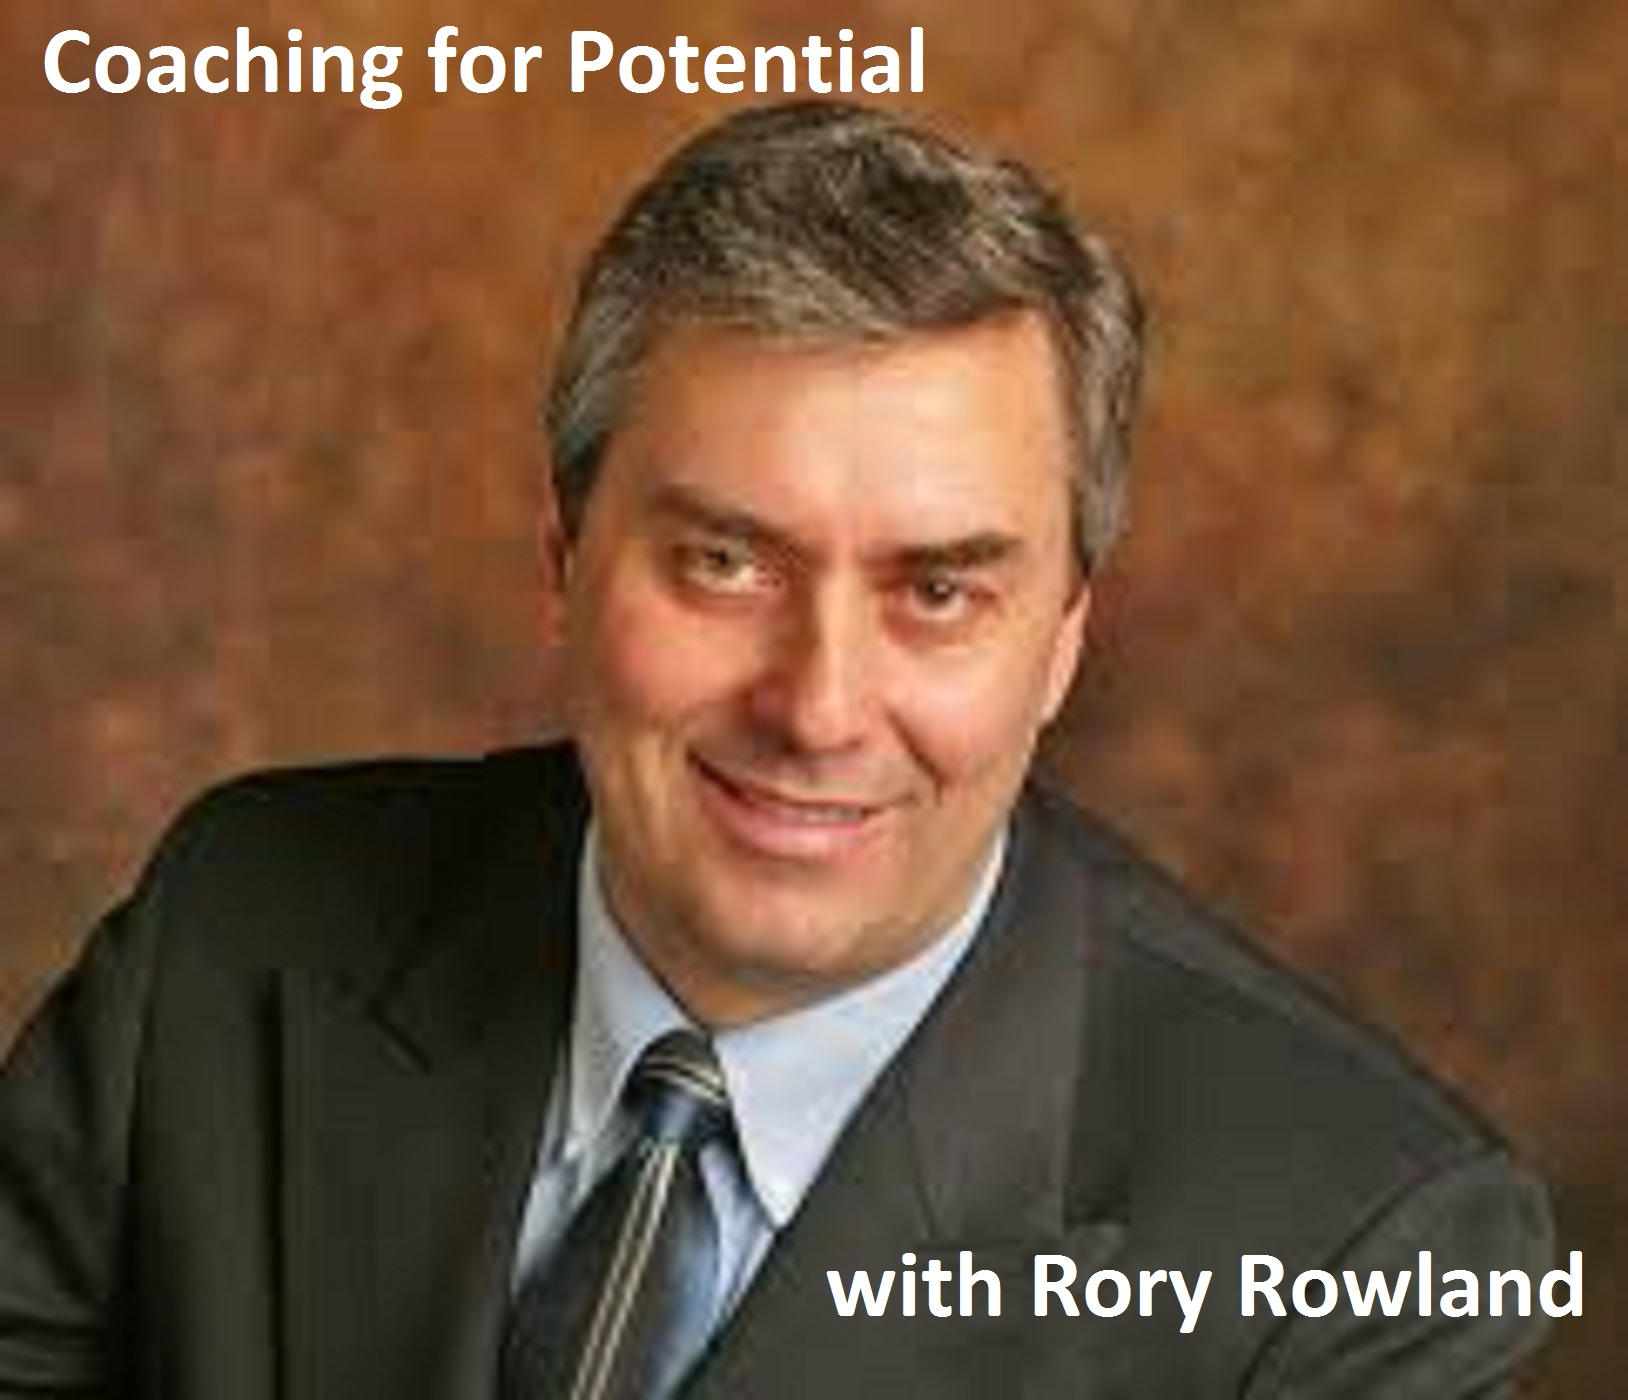 Coaching For Potential Podcast